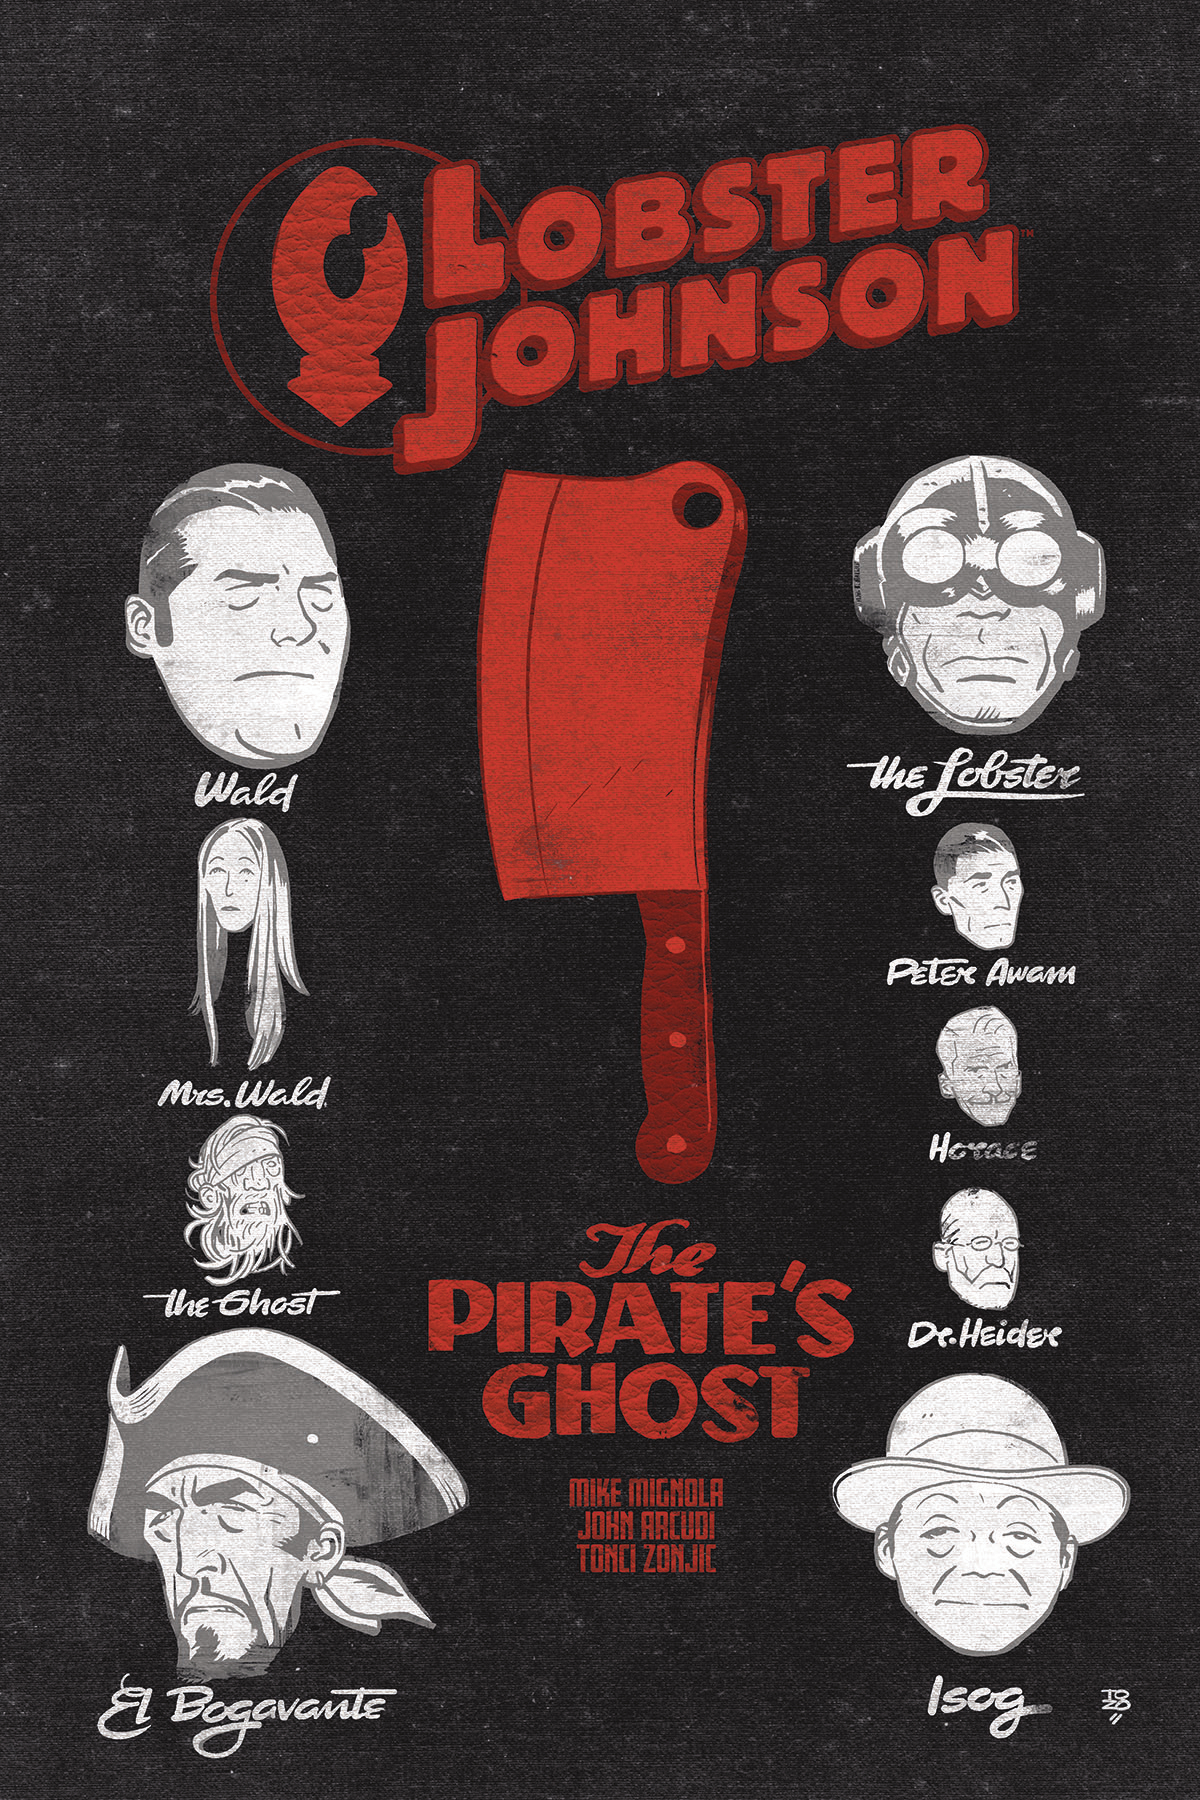 LOBSTER JOHNSON PIRATES GHOST #2